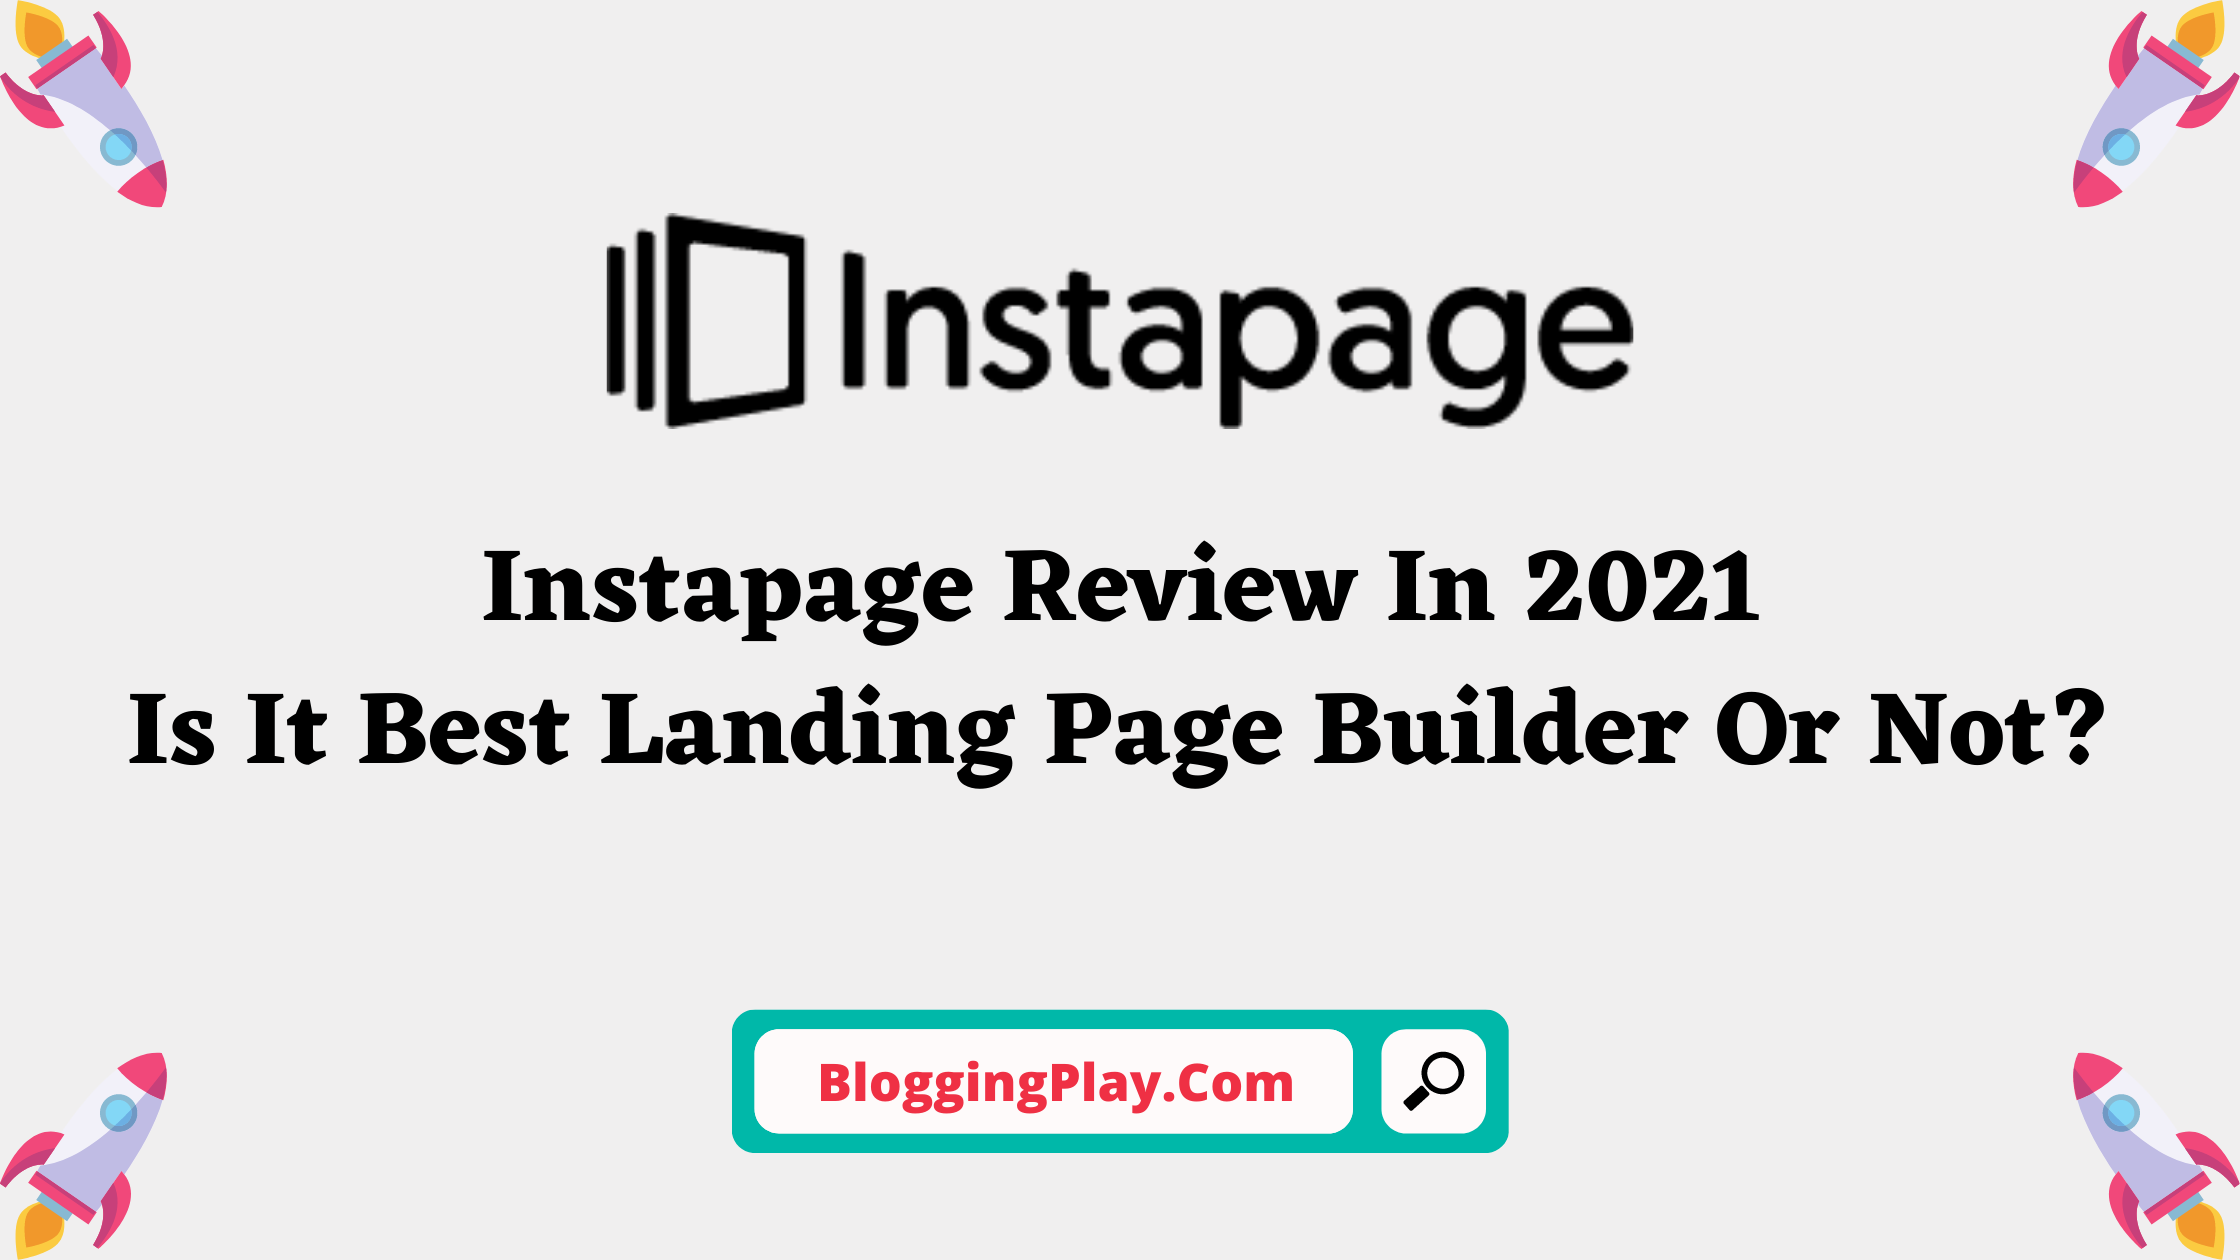 Instapage Review On BloggingPlay